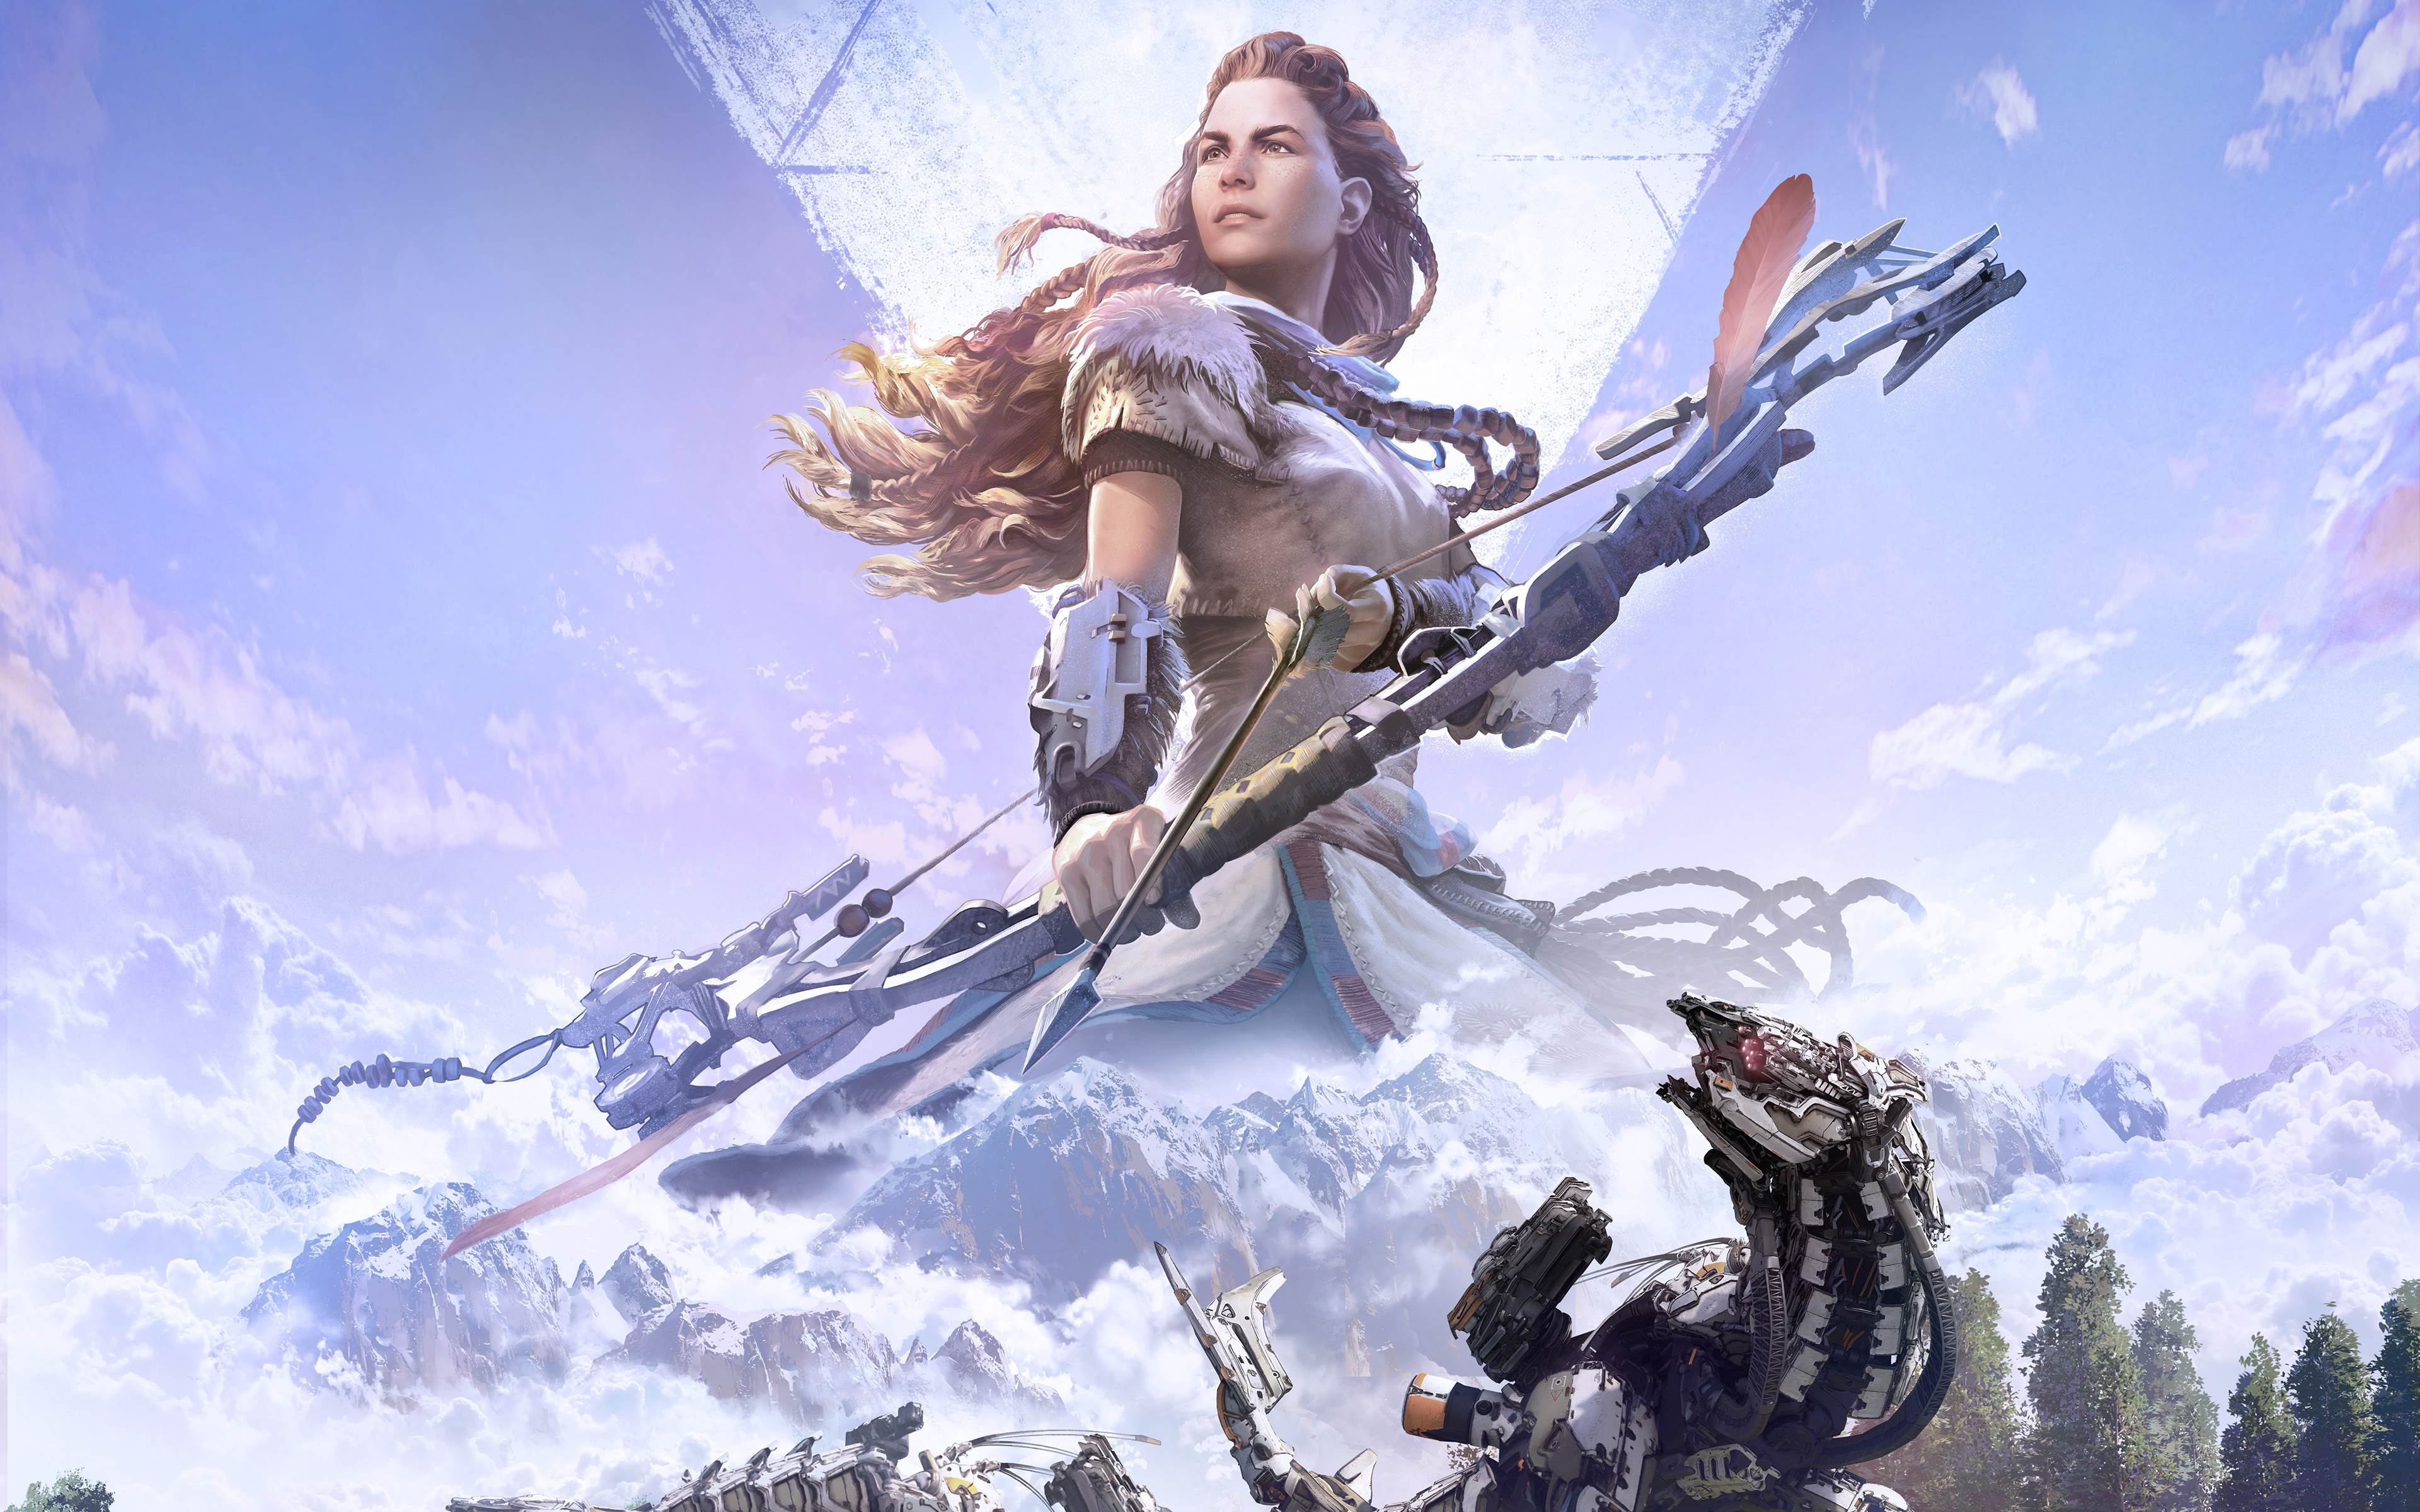 Horizon Zero Dawn Wallpaper HD   PixelsTalk Net Horizon zero dawn complete edition 4k wide pictures